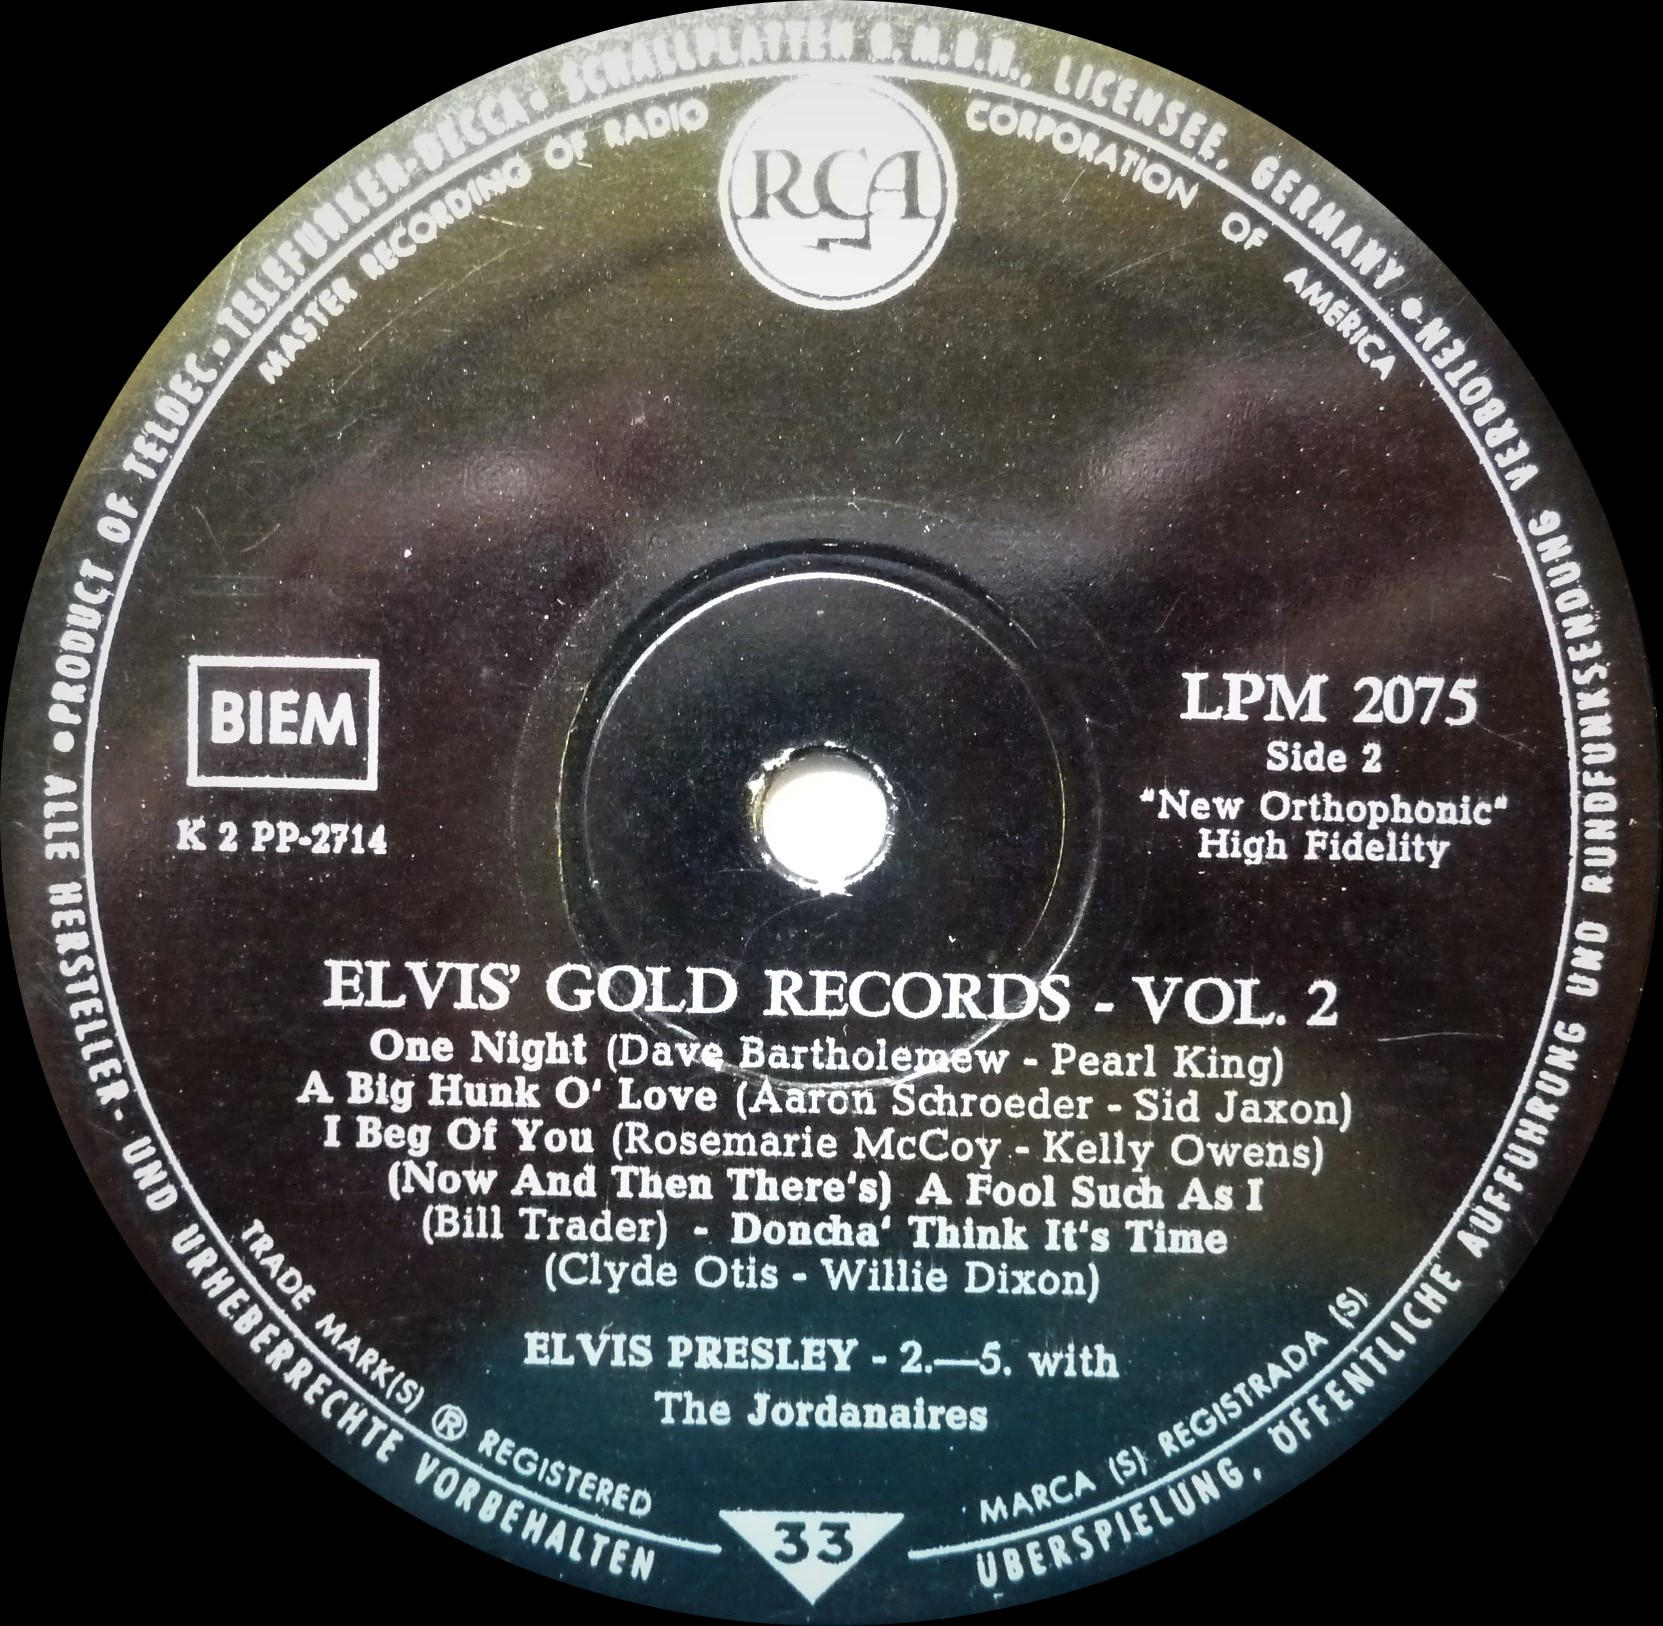 ELVIS' GOLD RECORDS VOL. 2 - 50.000.000 ELVIS FANS CAN´T BE WRONG Goldrecordsvol.21959szkutn